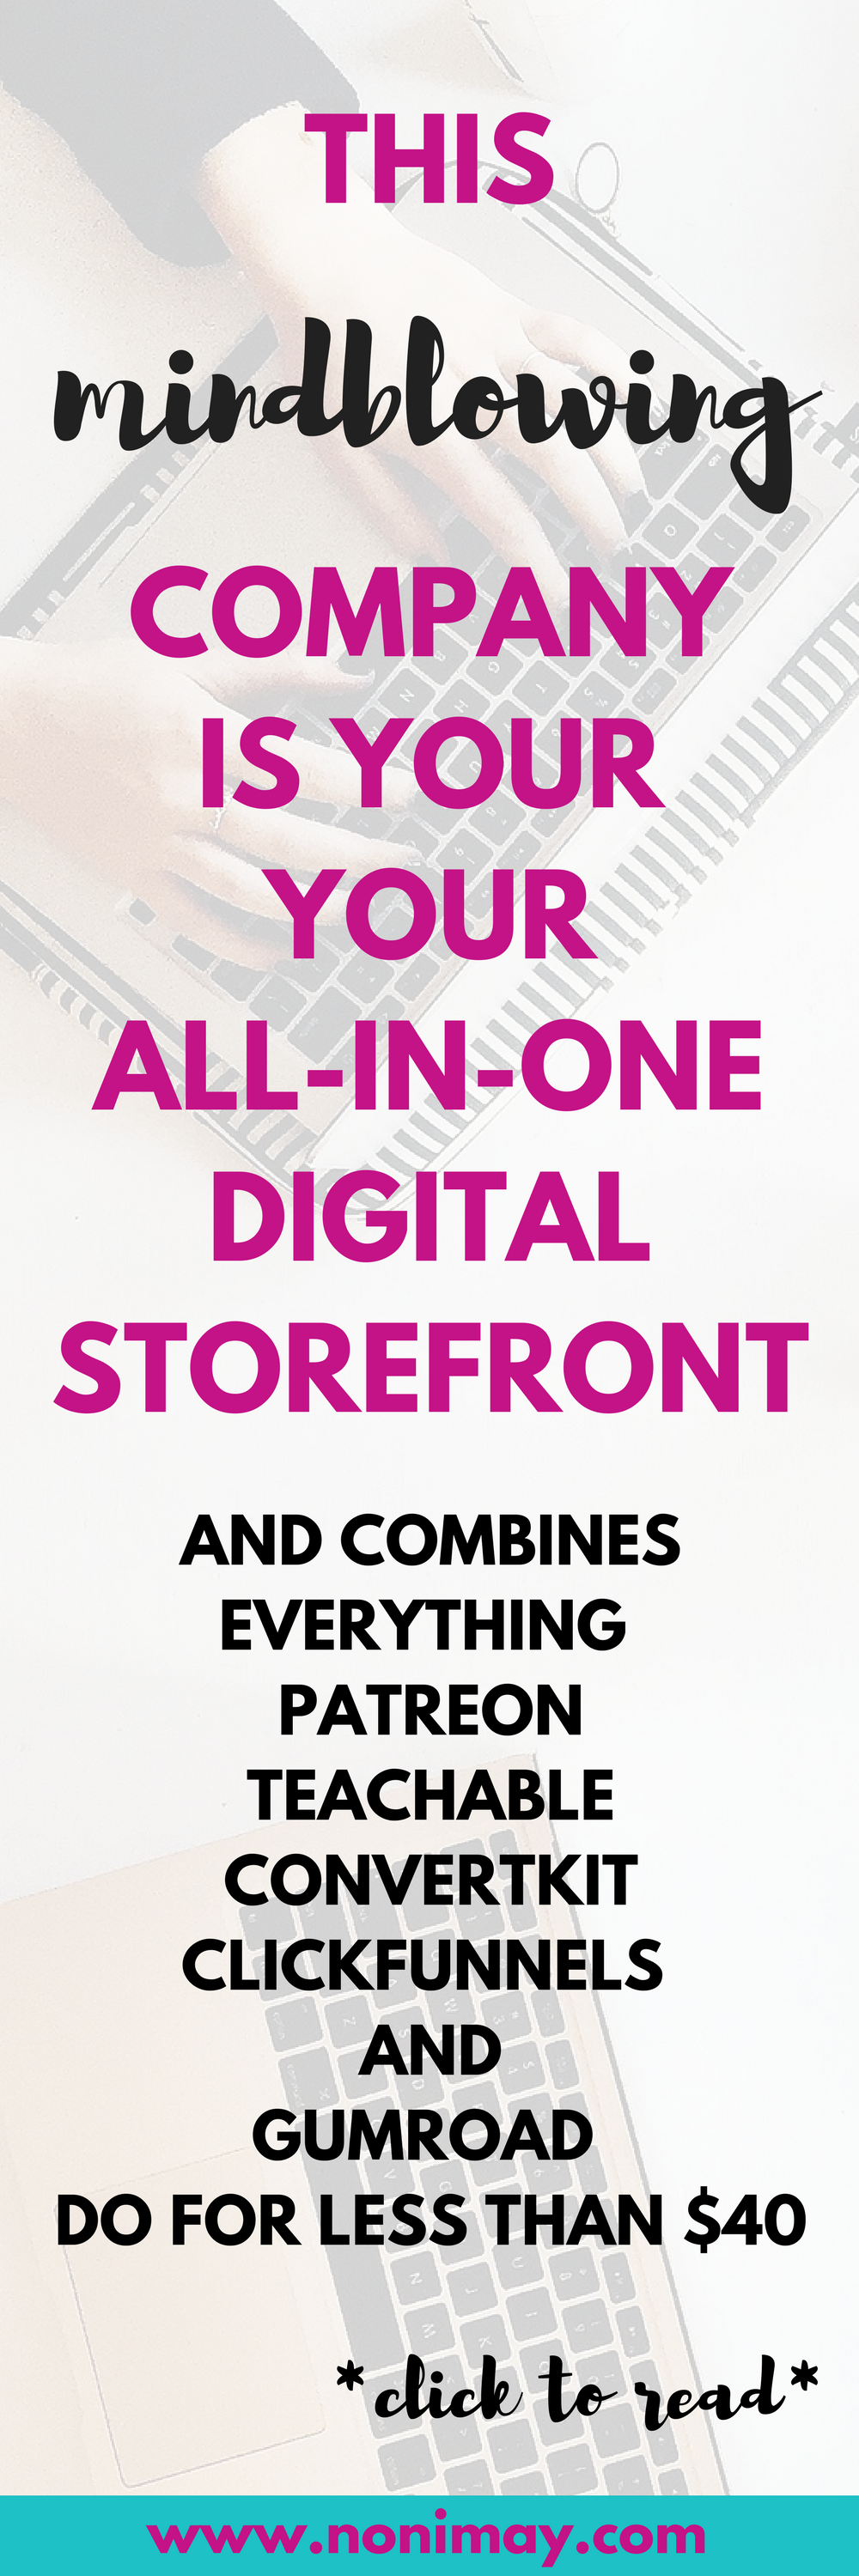 This mindblowing company is your all-in-one digital storefront and combines teachable convertkit and clickfunnels